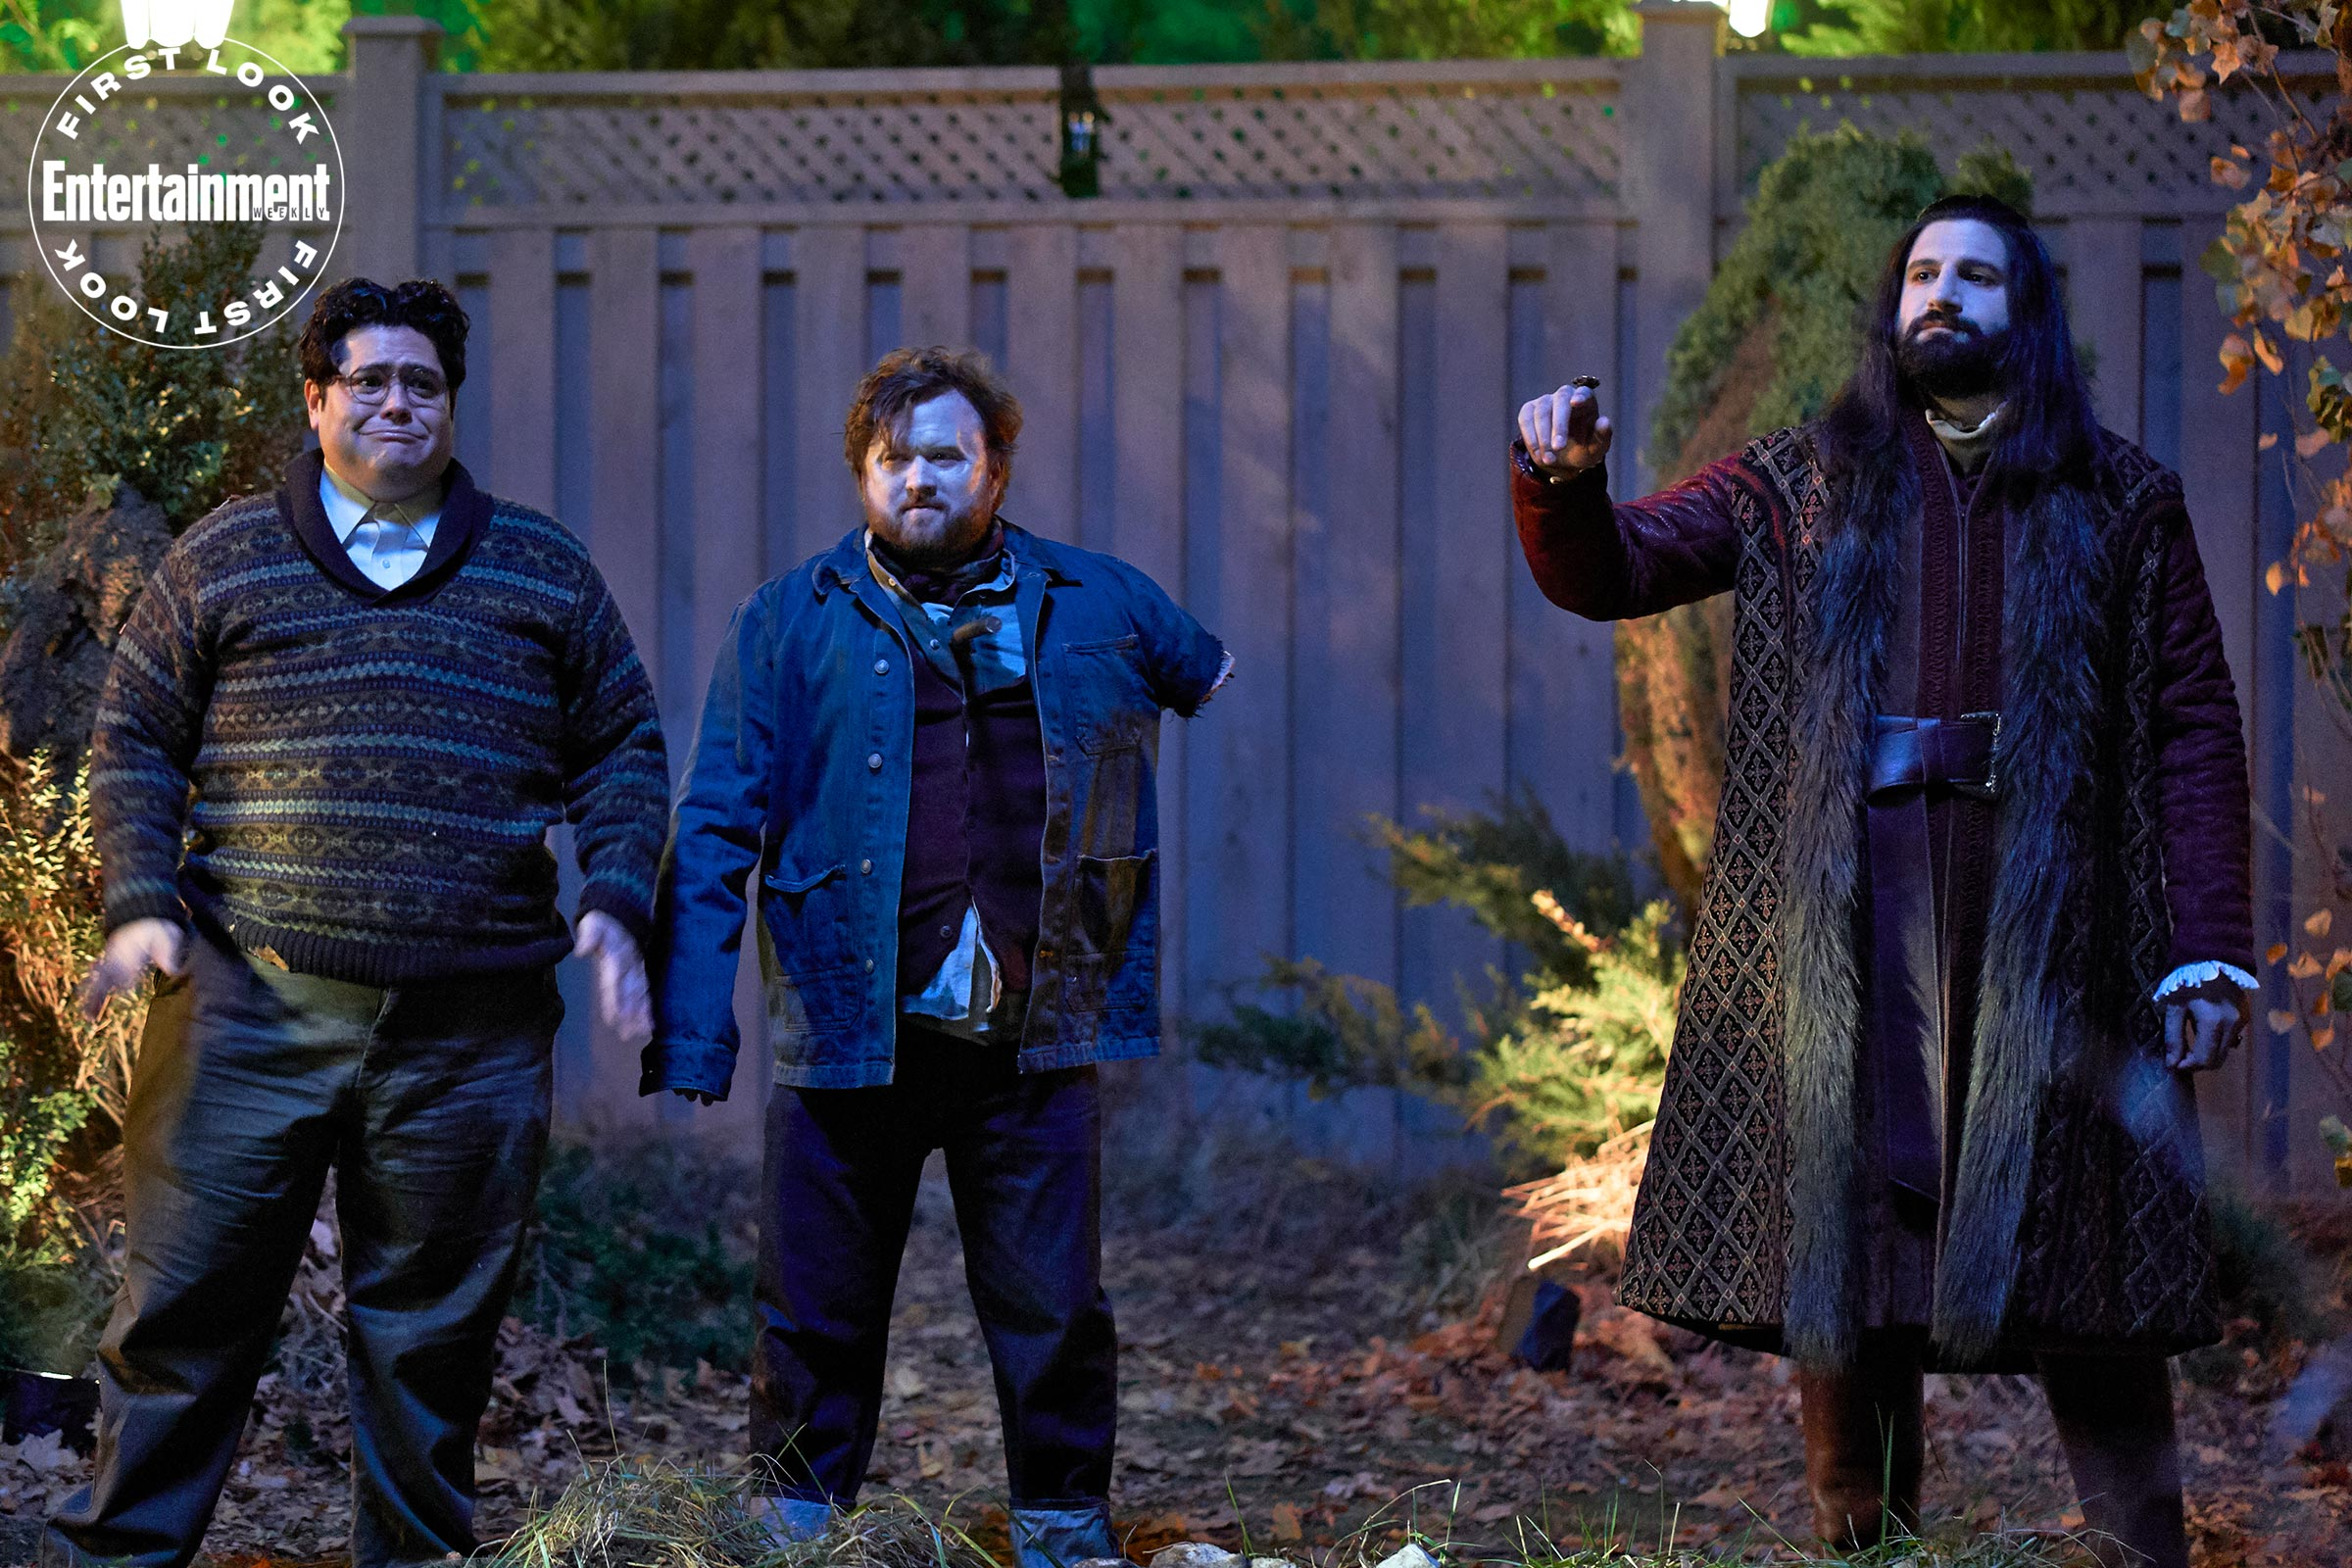 What We do in the Shadows sezon 2